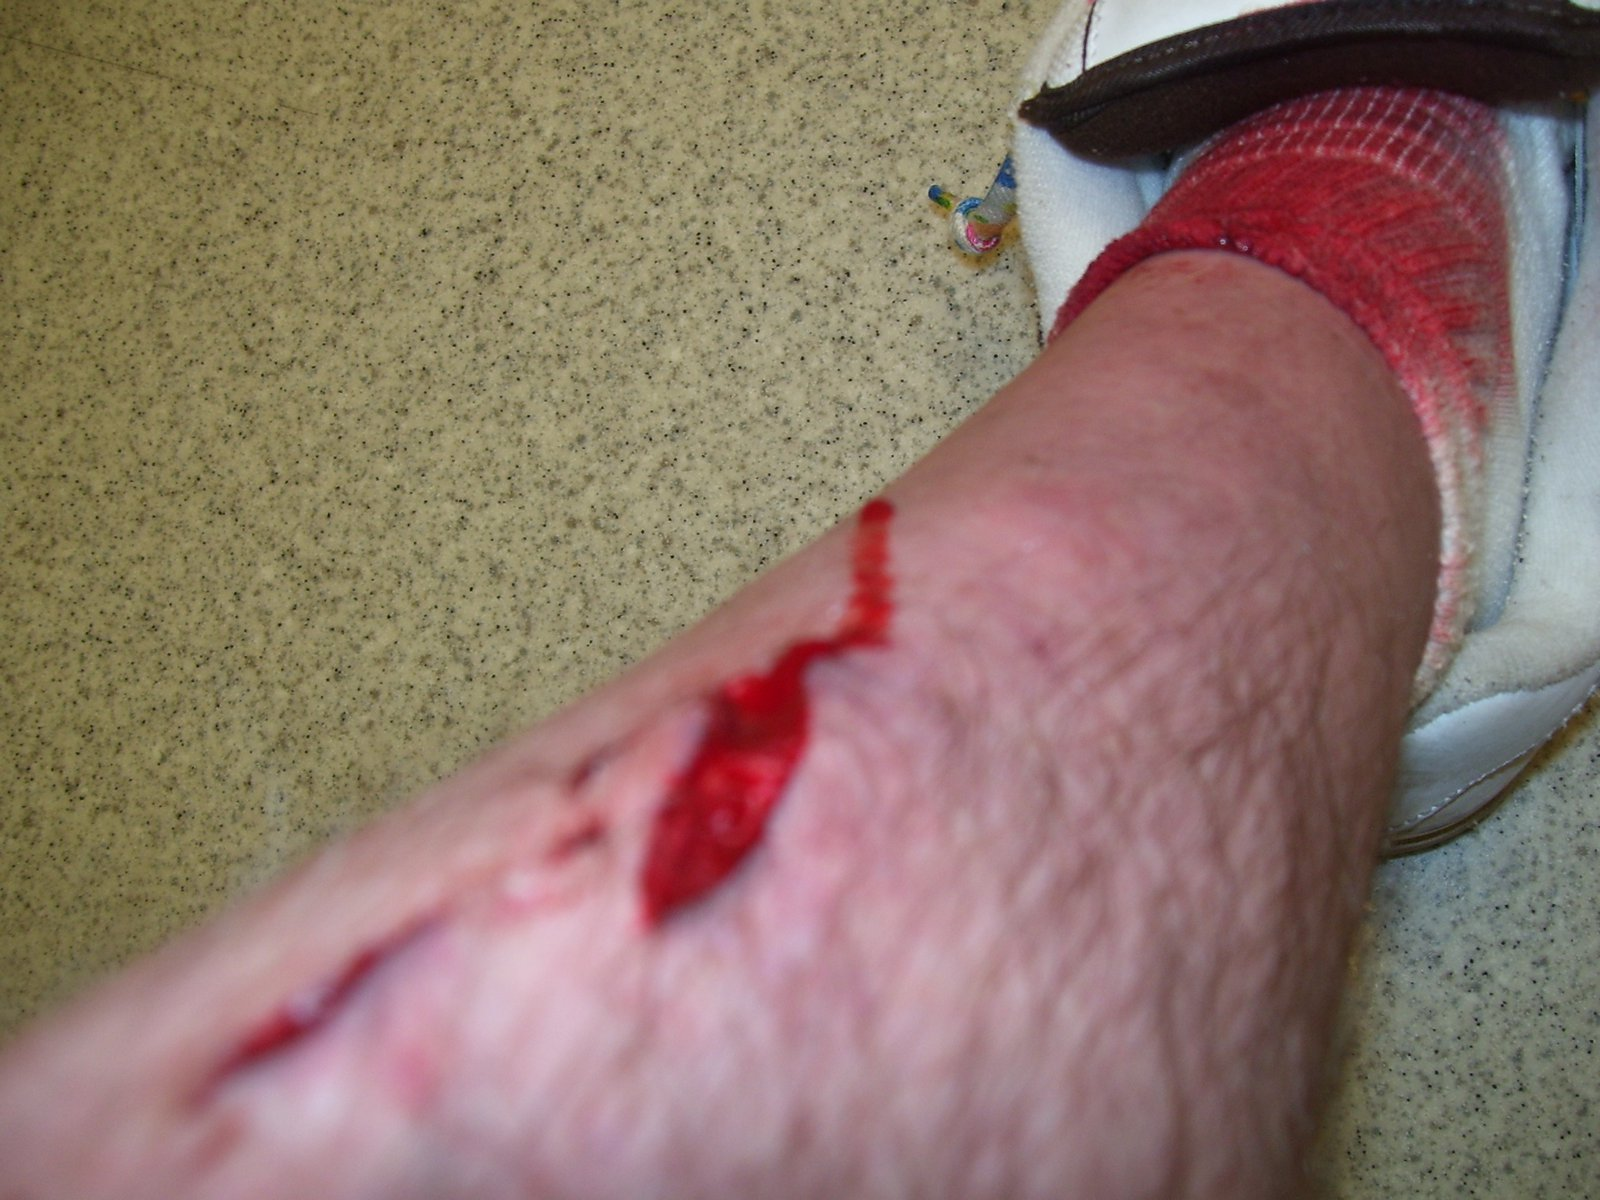 Starting to get gory